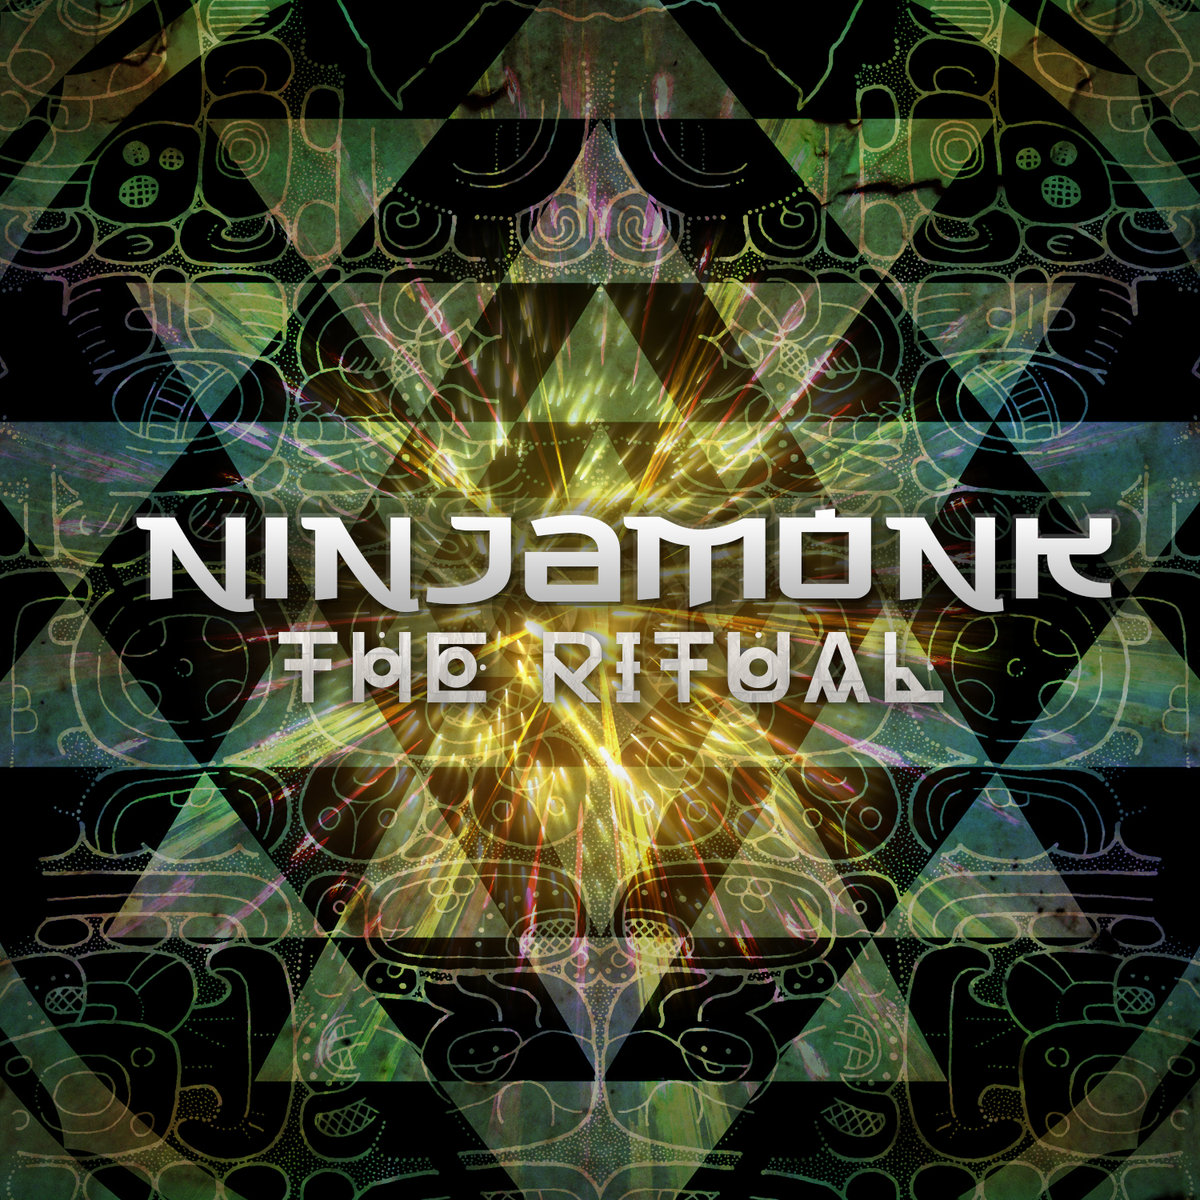 Ninjamonk - The Ritual @ 'The Ritual' album (bass, chill)